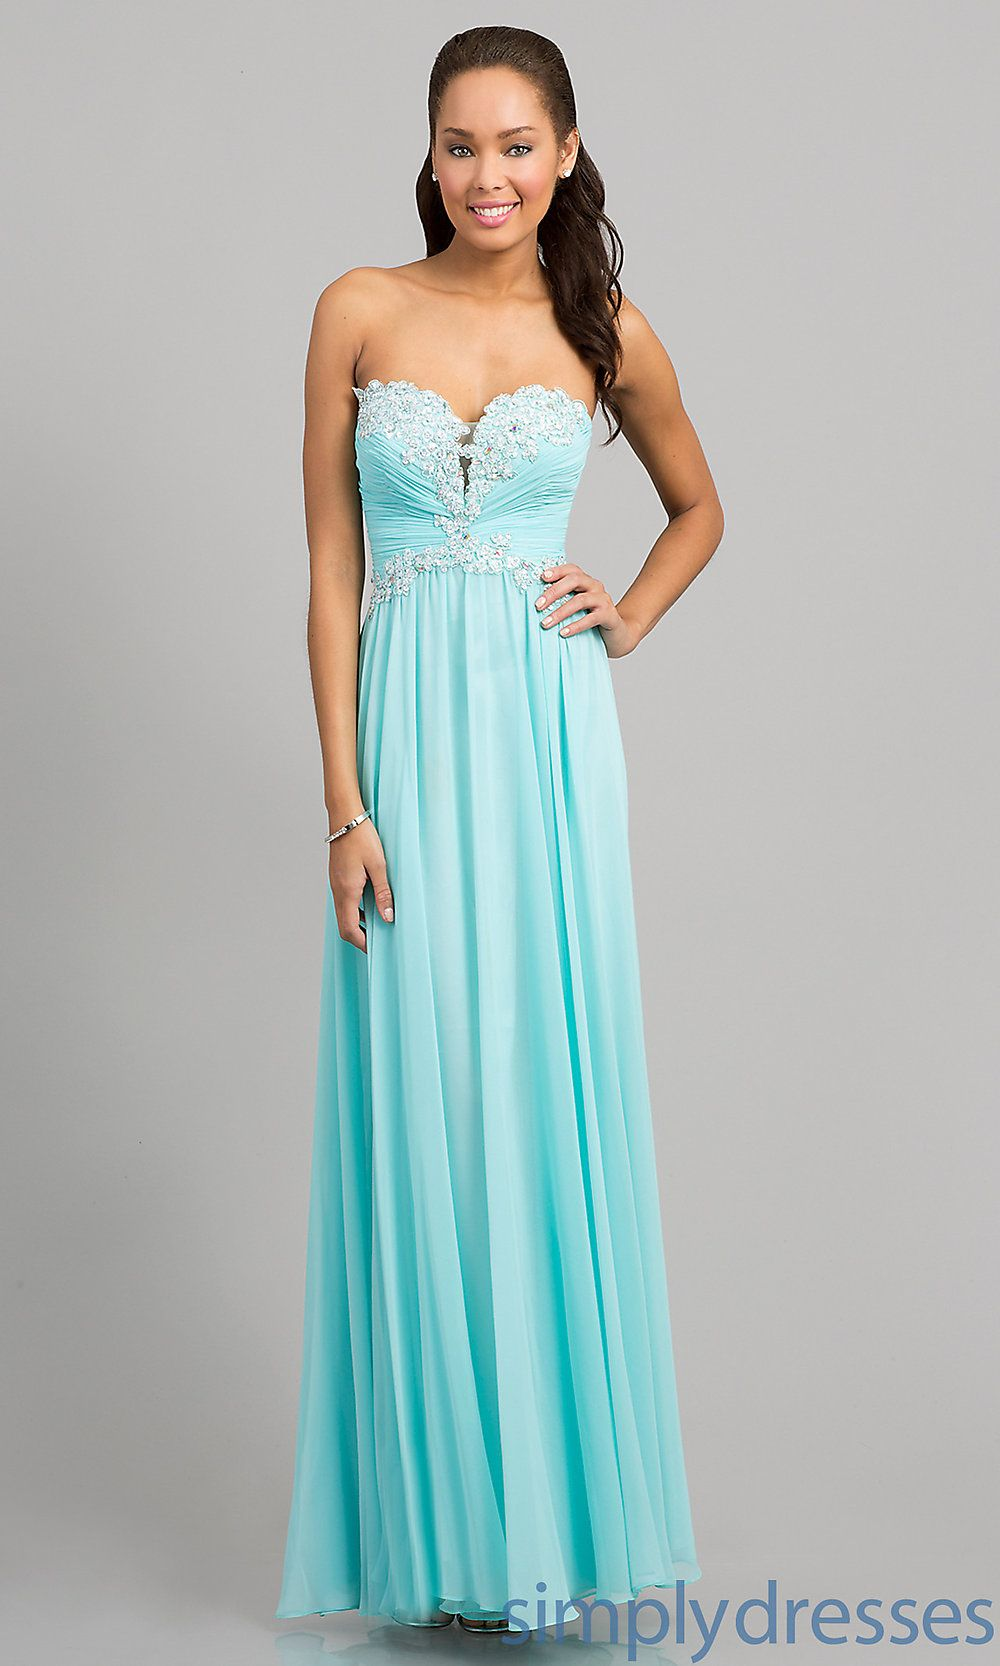 Strapless blue prom gown corset back prom gowns simplydresses